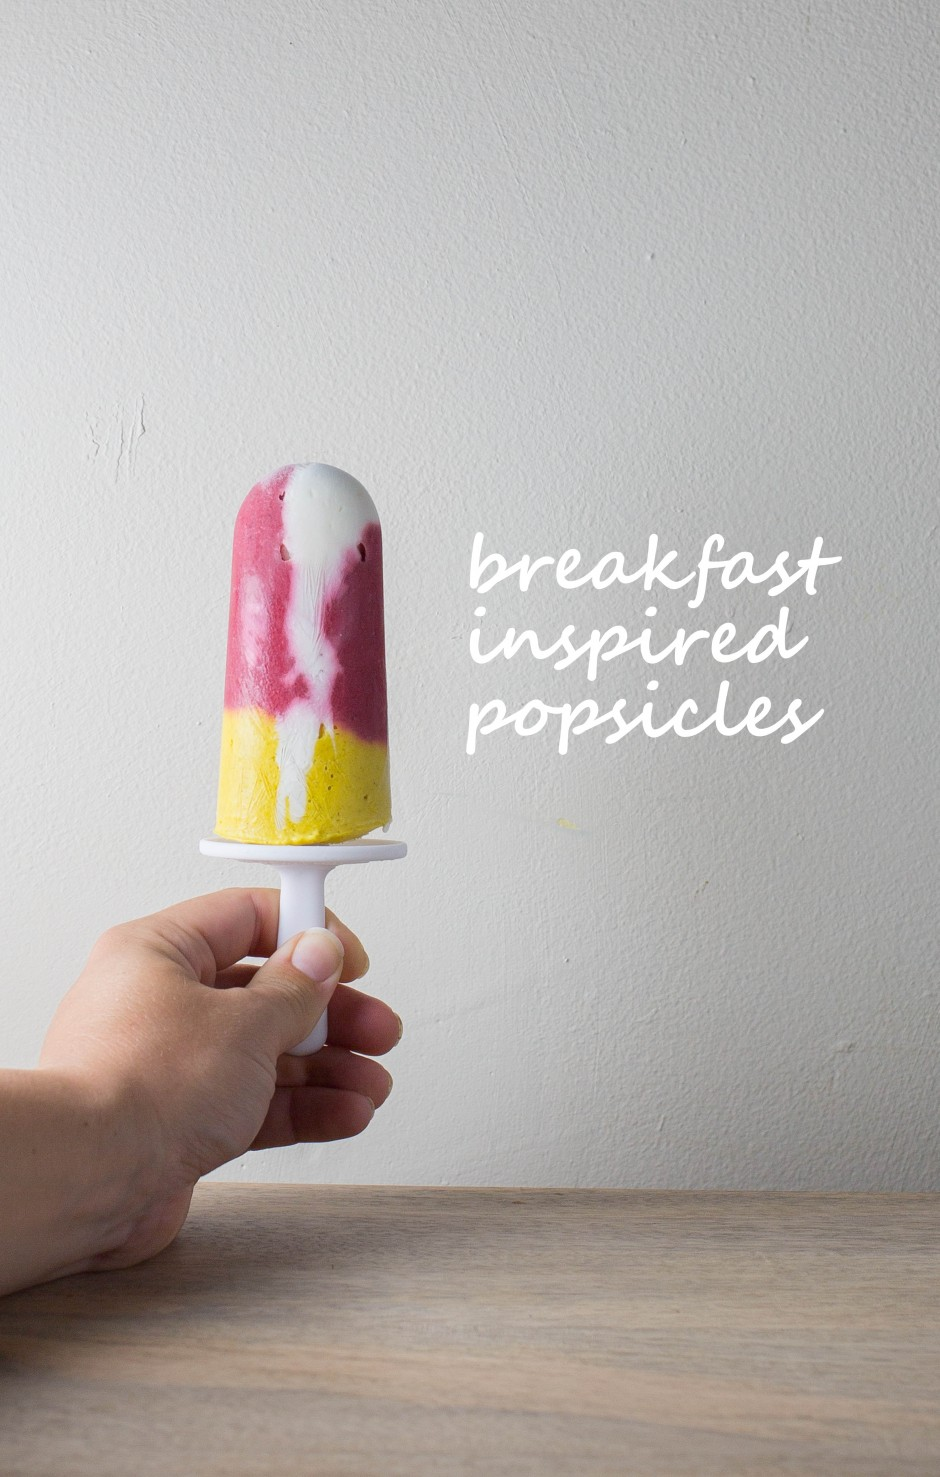 breakfast inspired popsicles l punctuated. with food